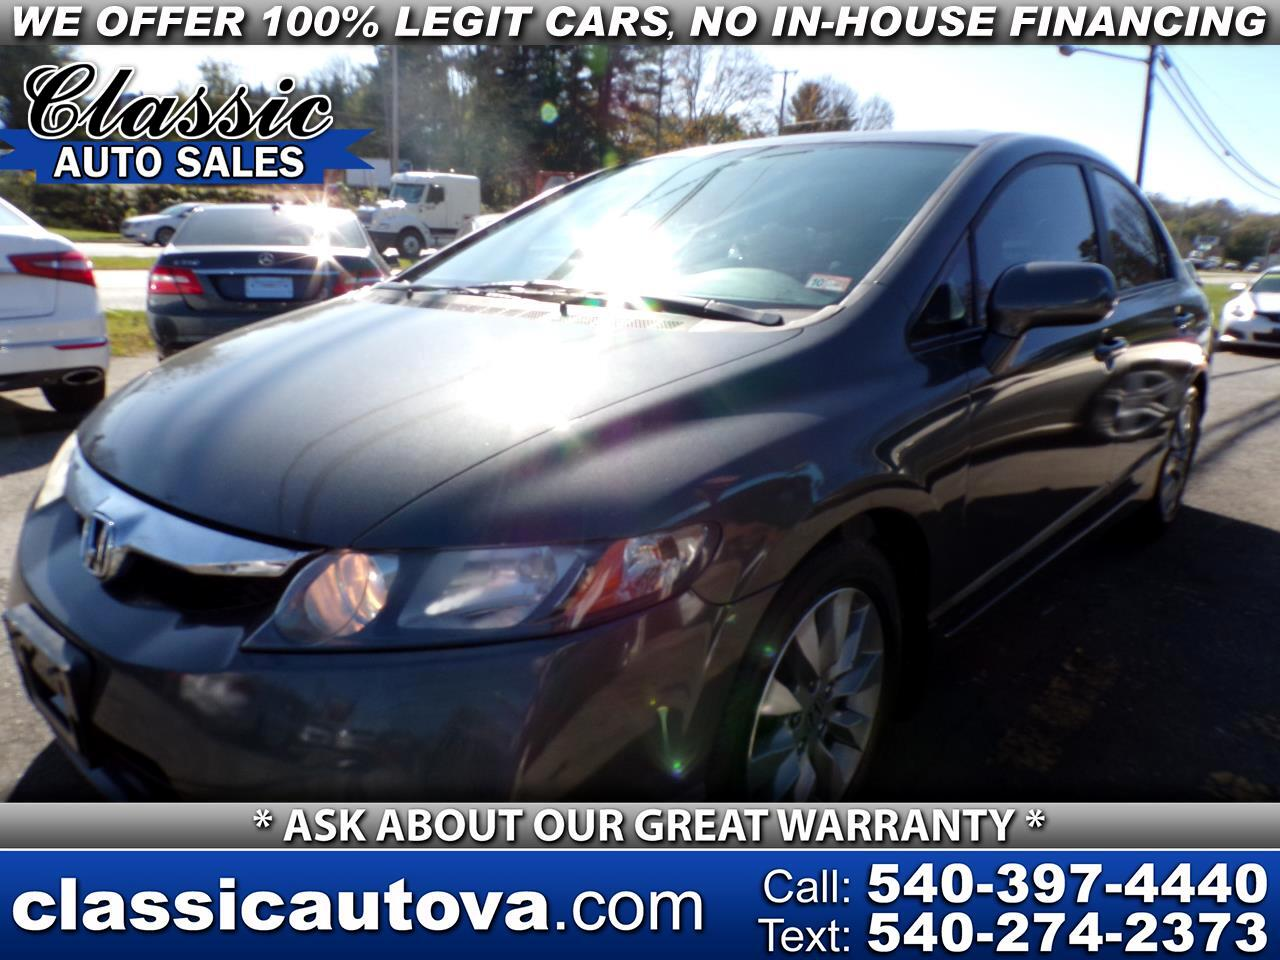 Honda Civic EX-L Sedan with Navigation 2010